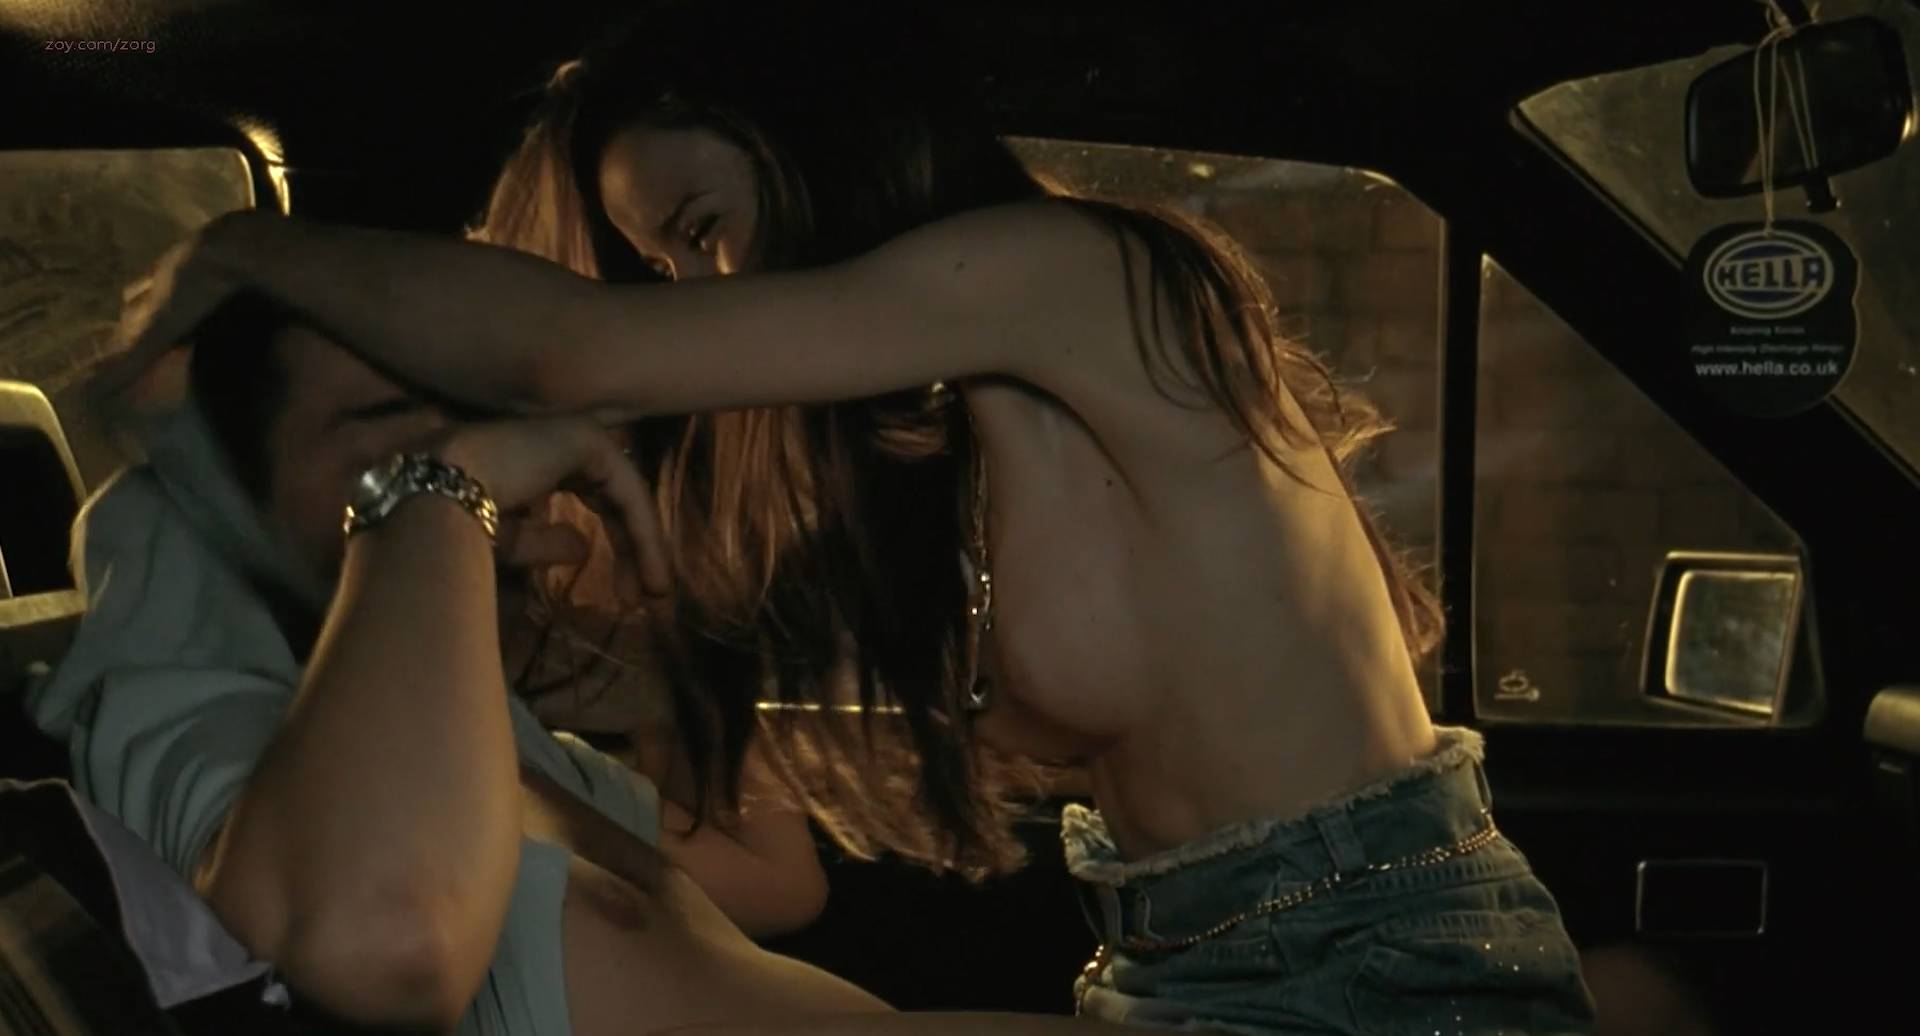 Sally-Hawkins-nude-sex-in-the-car-All-or-Nothing-2002-hd1080p-007.jpg